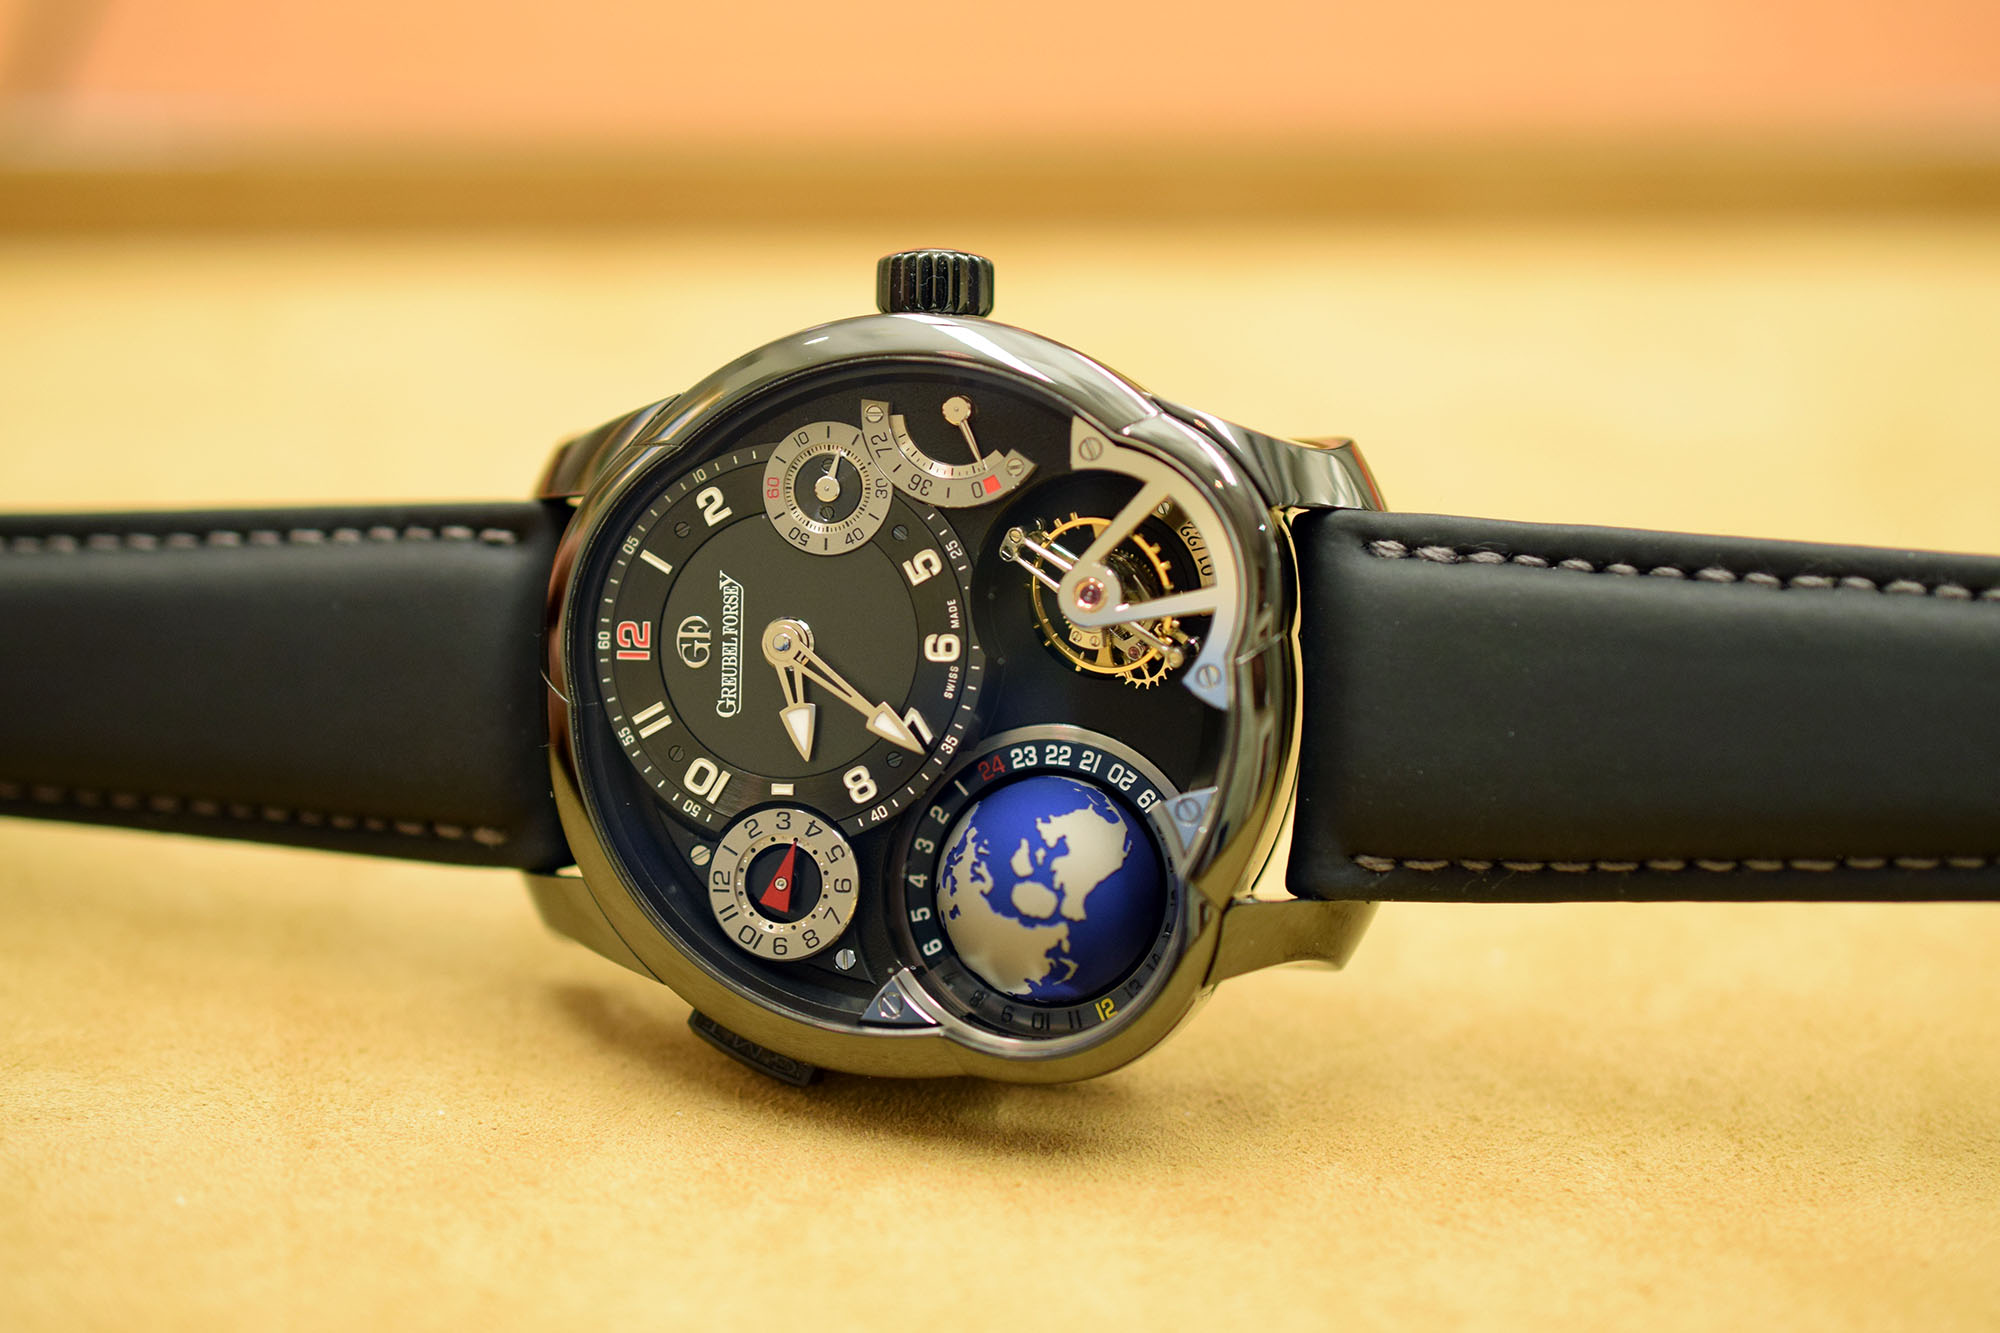 The Greubel Forsey GMT Black